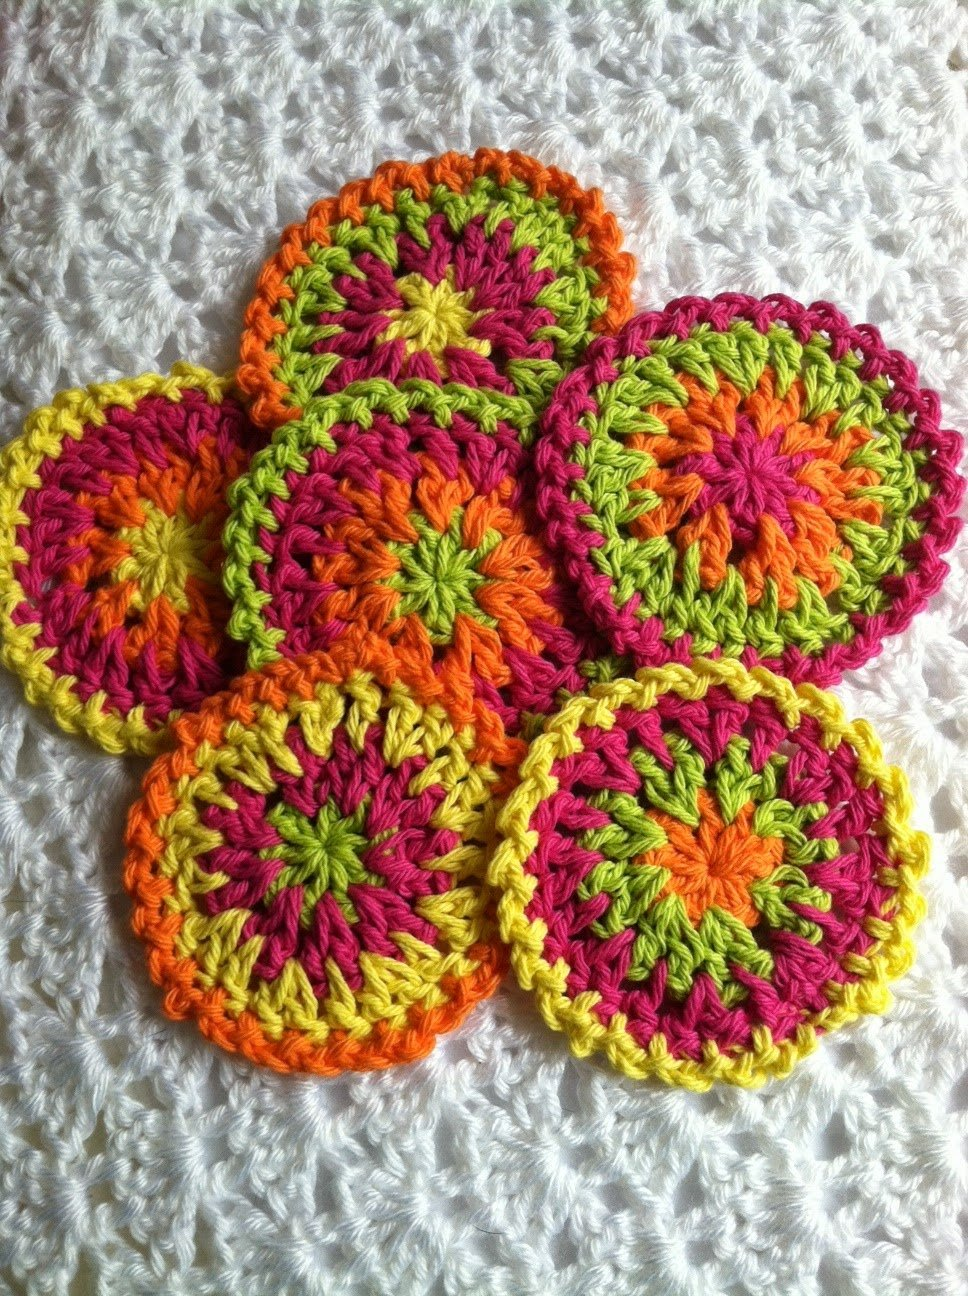 Crochet Patterns Coasters : 21 Easy Crochet Coaster Patterns Guide Patterns